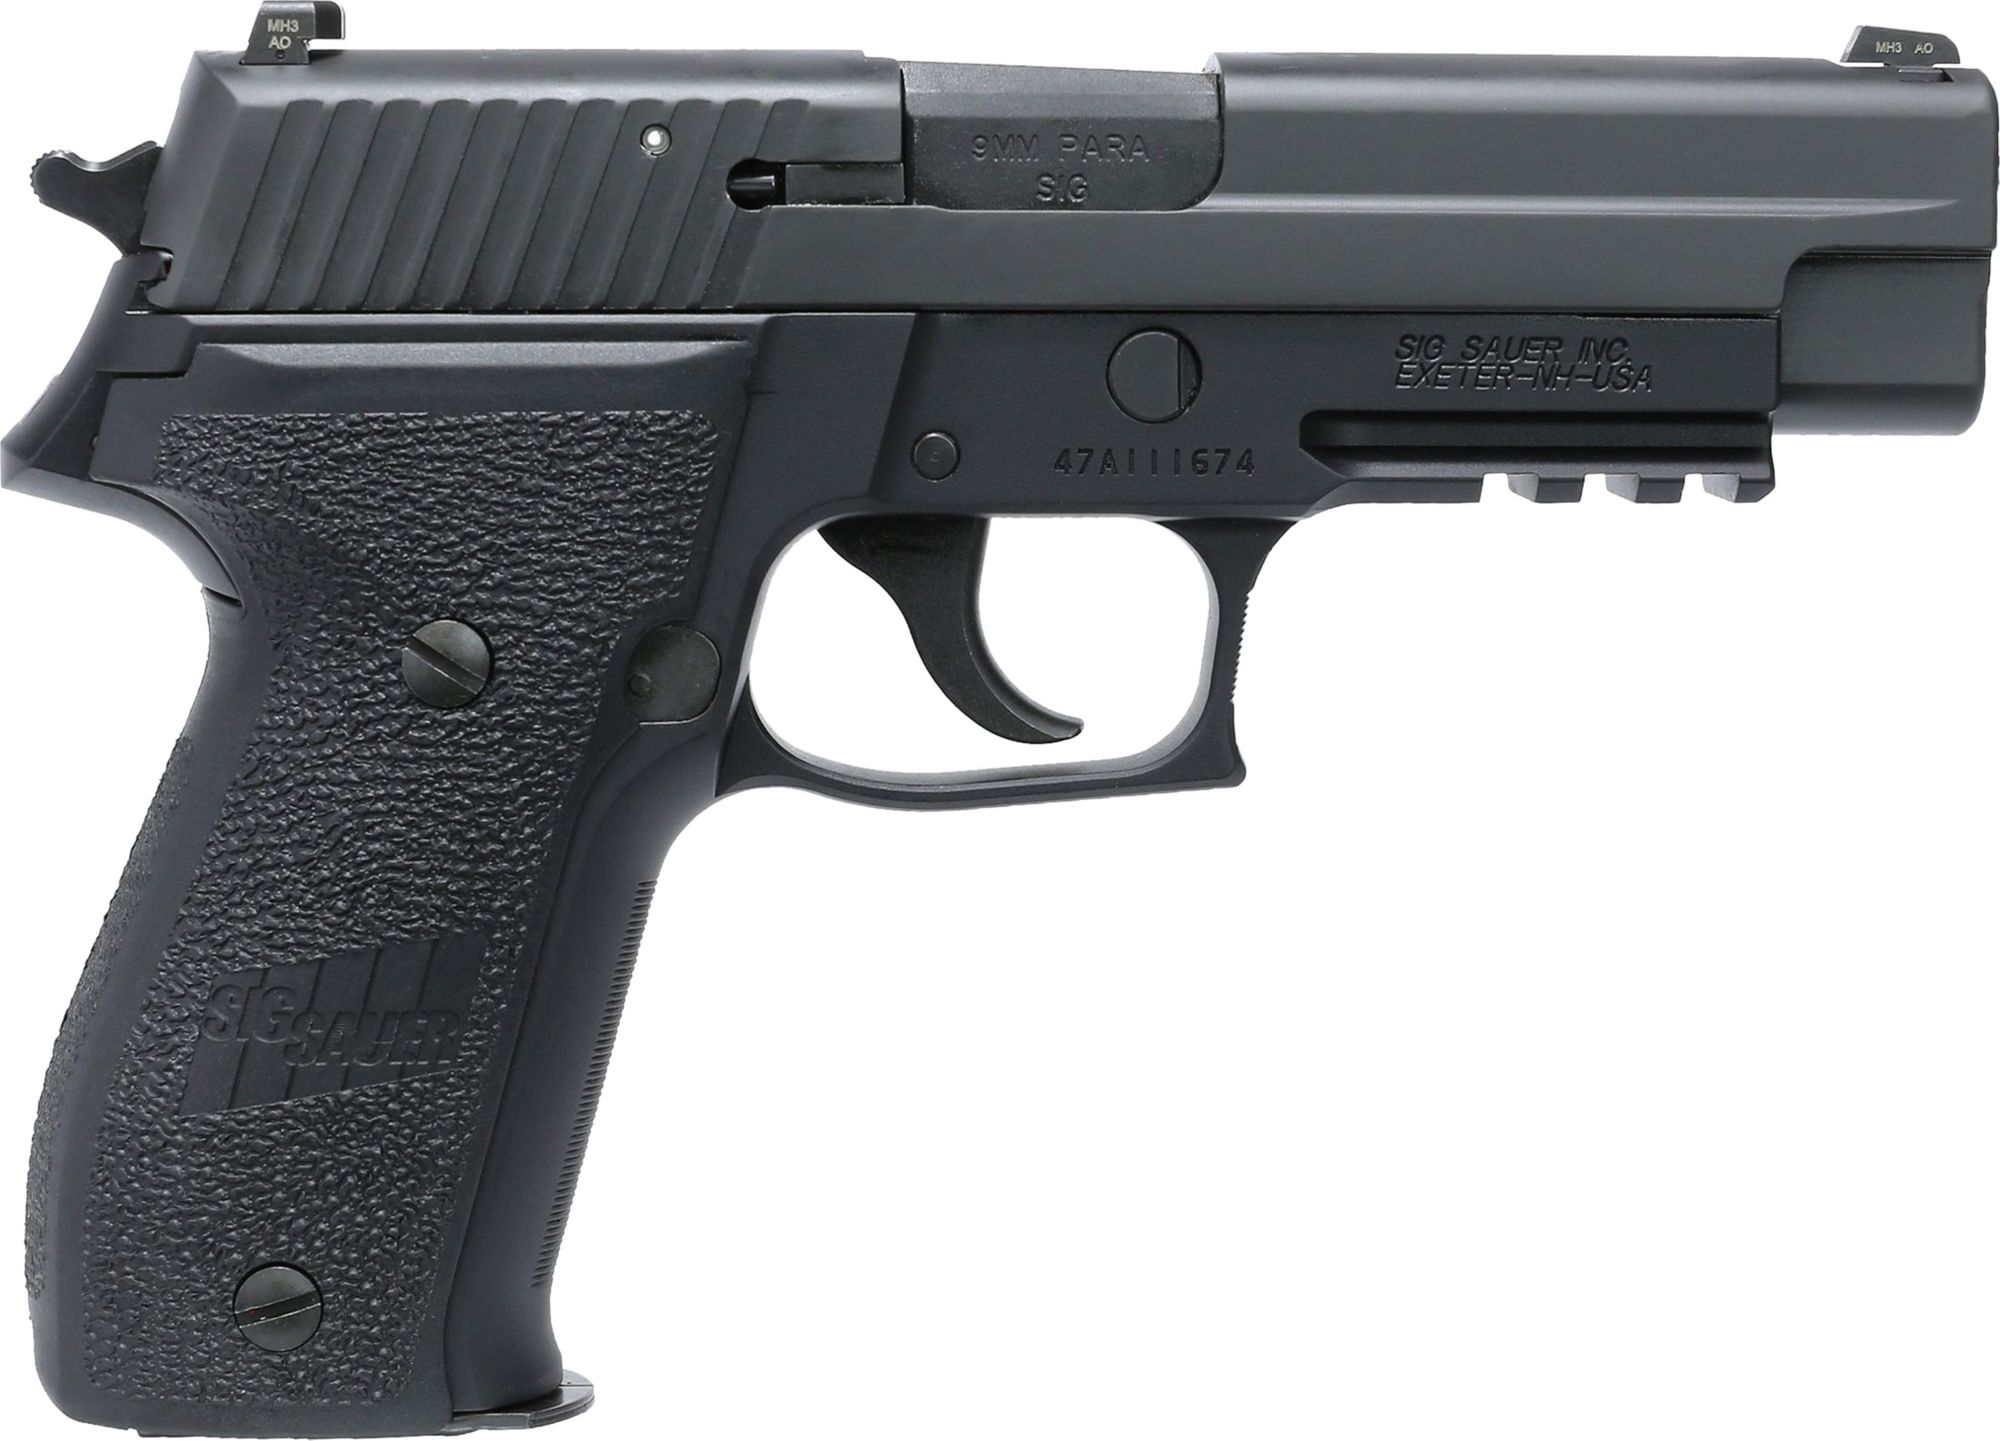 Home Goods And Decor Sig Sauer P226 Mk25 Pistol Field Amp Stream